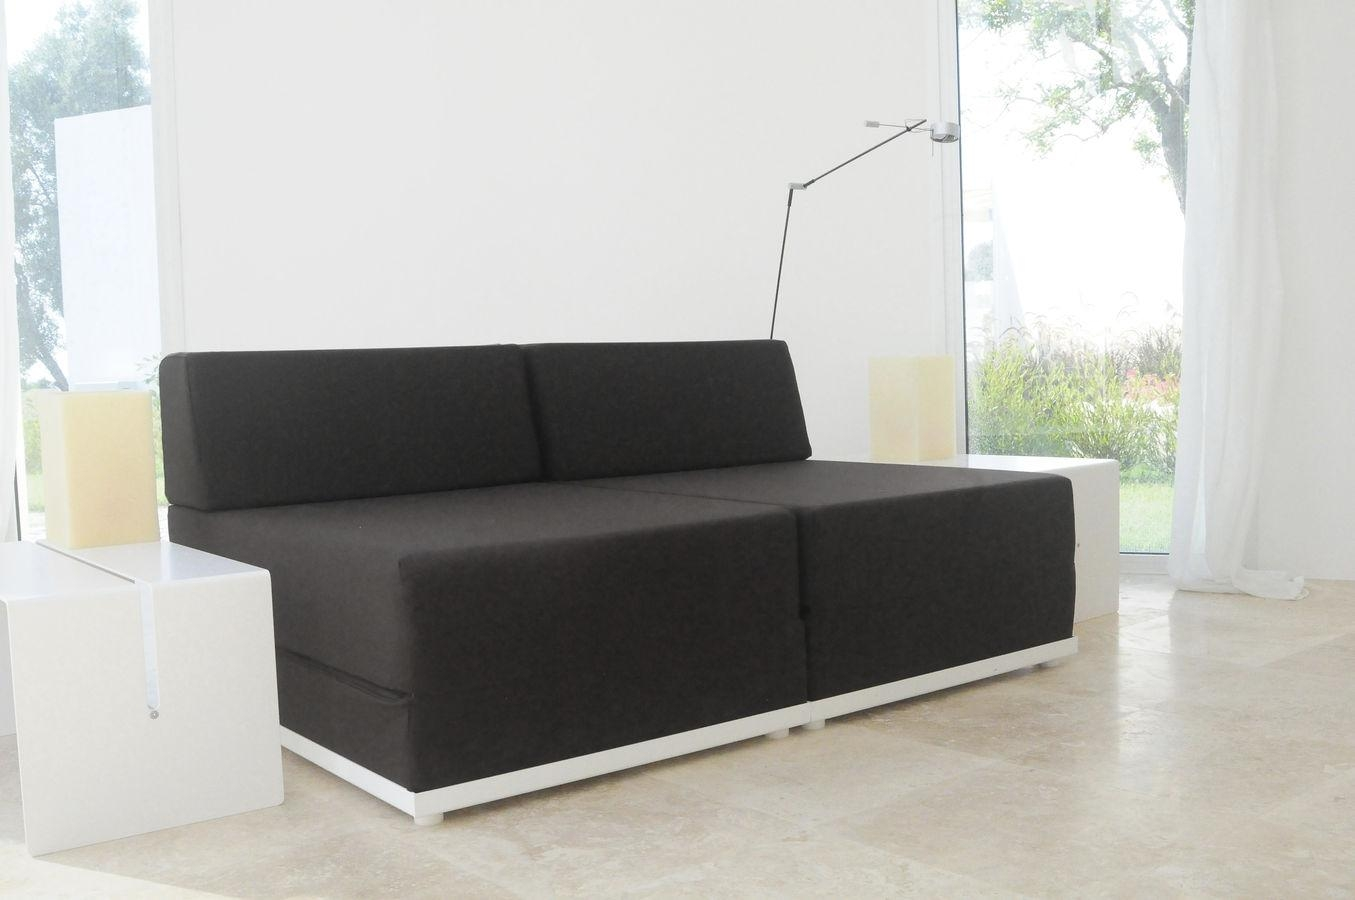 New Carlyle Sofa Bed 93 On Sofa Room Ideas With Carlyle Sofa Bed For Carlyle Sofa Beds (Image 6 of 20)